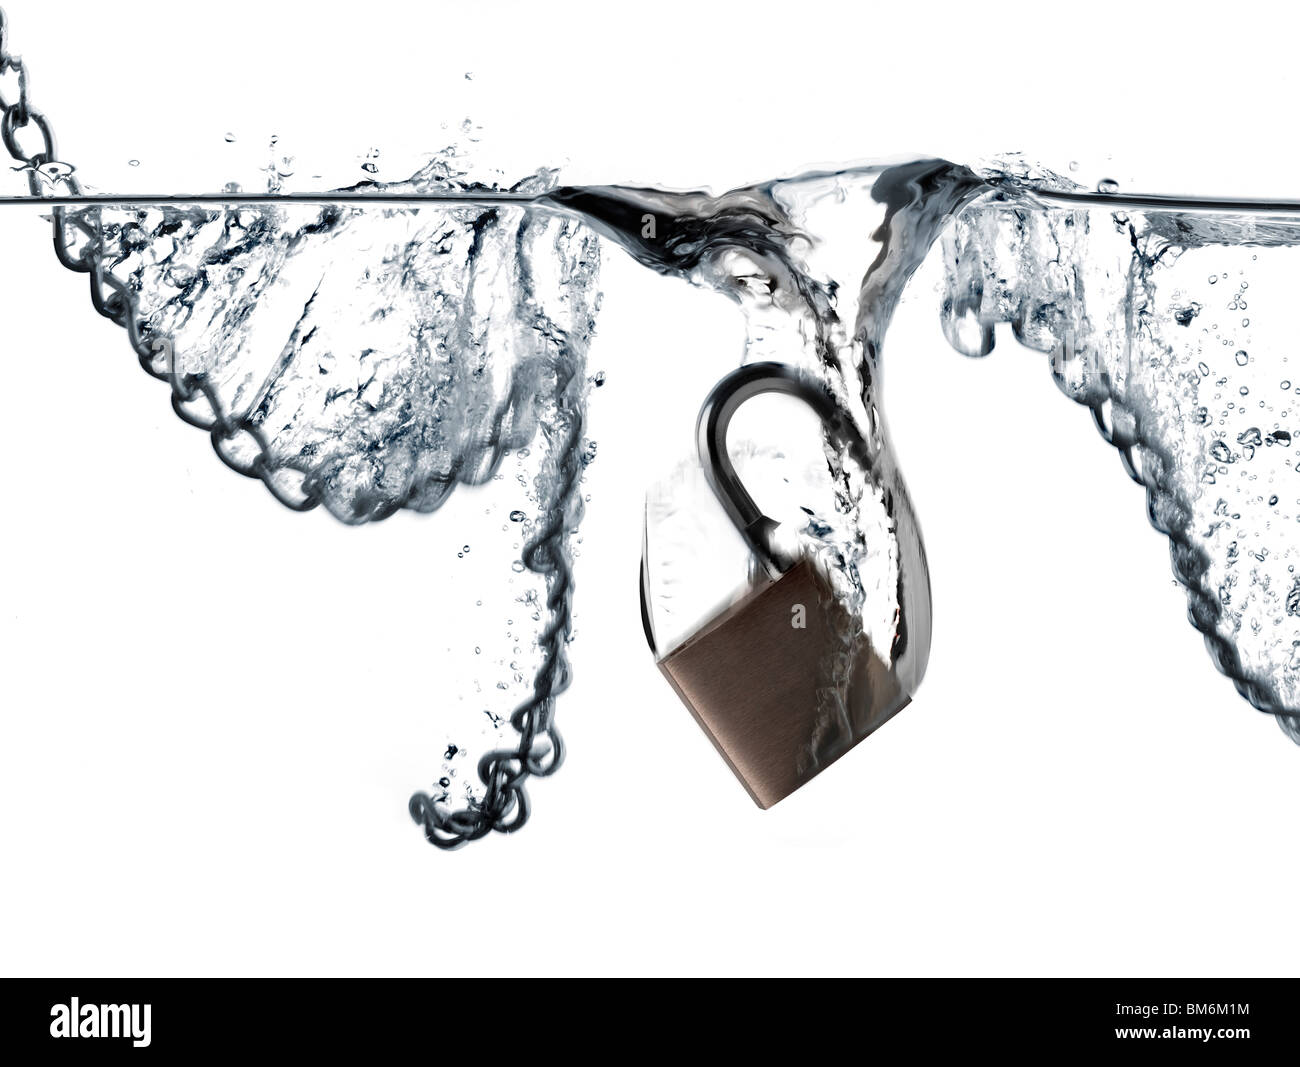 padlock and chains falling into water - Stock Image